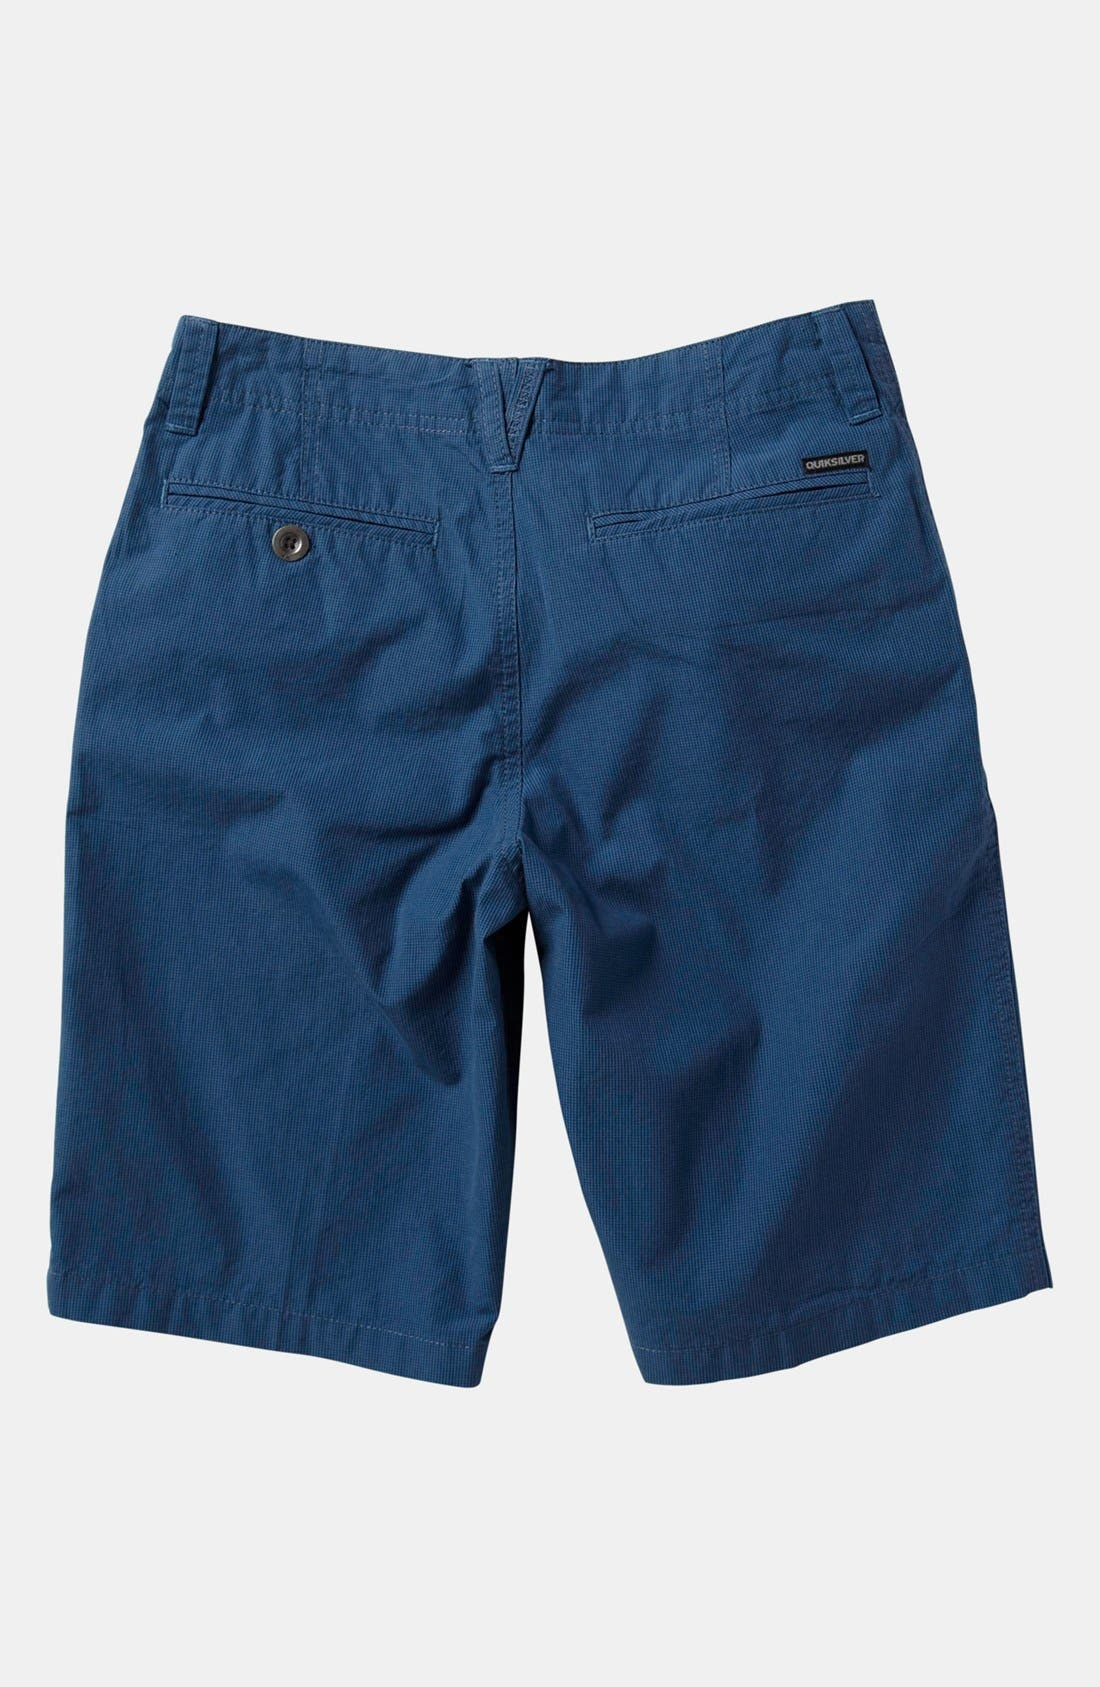 Alternate Image 2  - Quiksilver 'Nugget' Shorts (Big Boys)